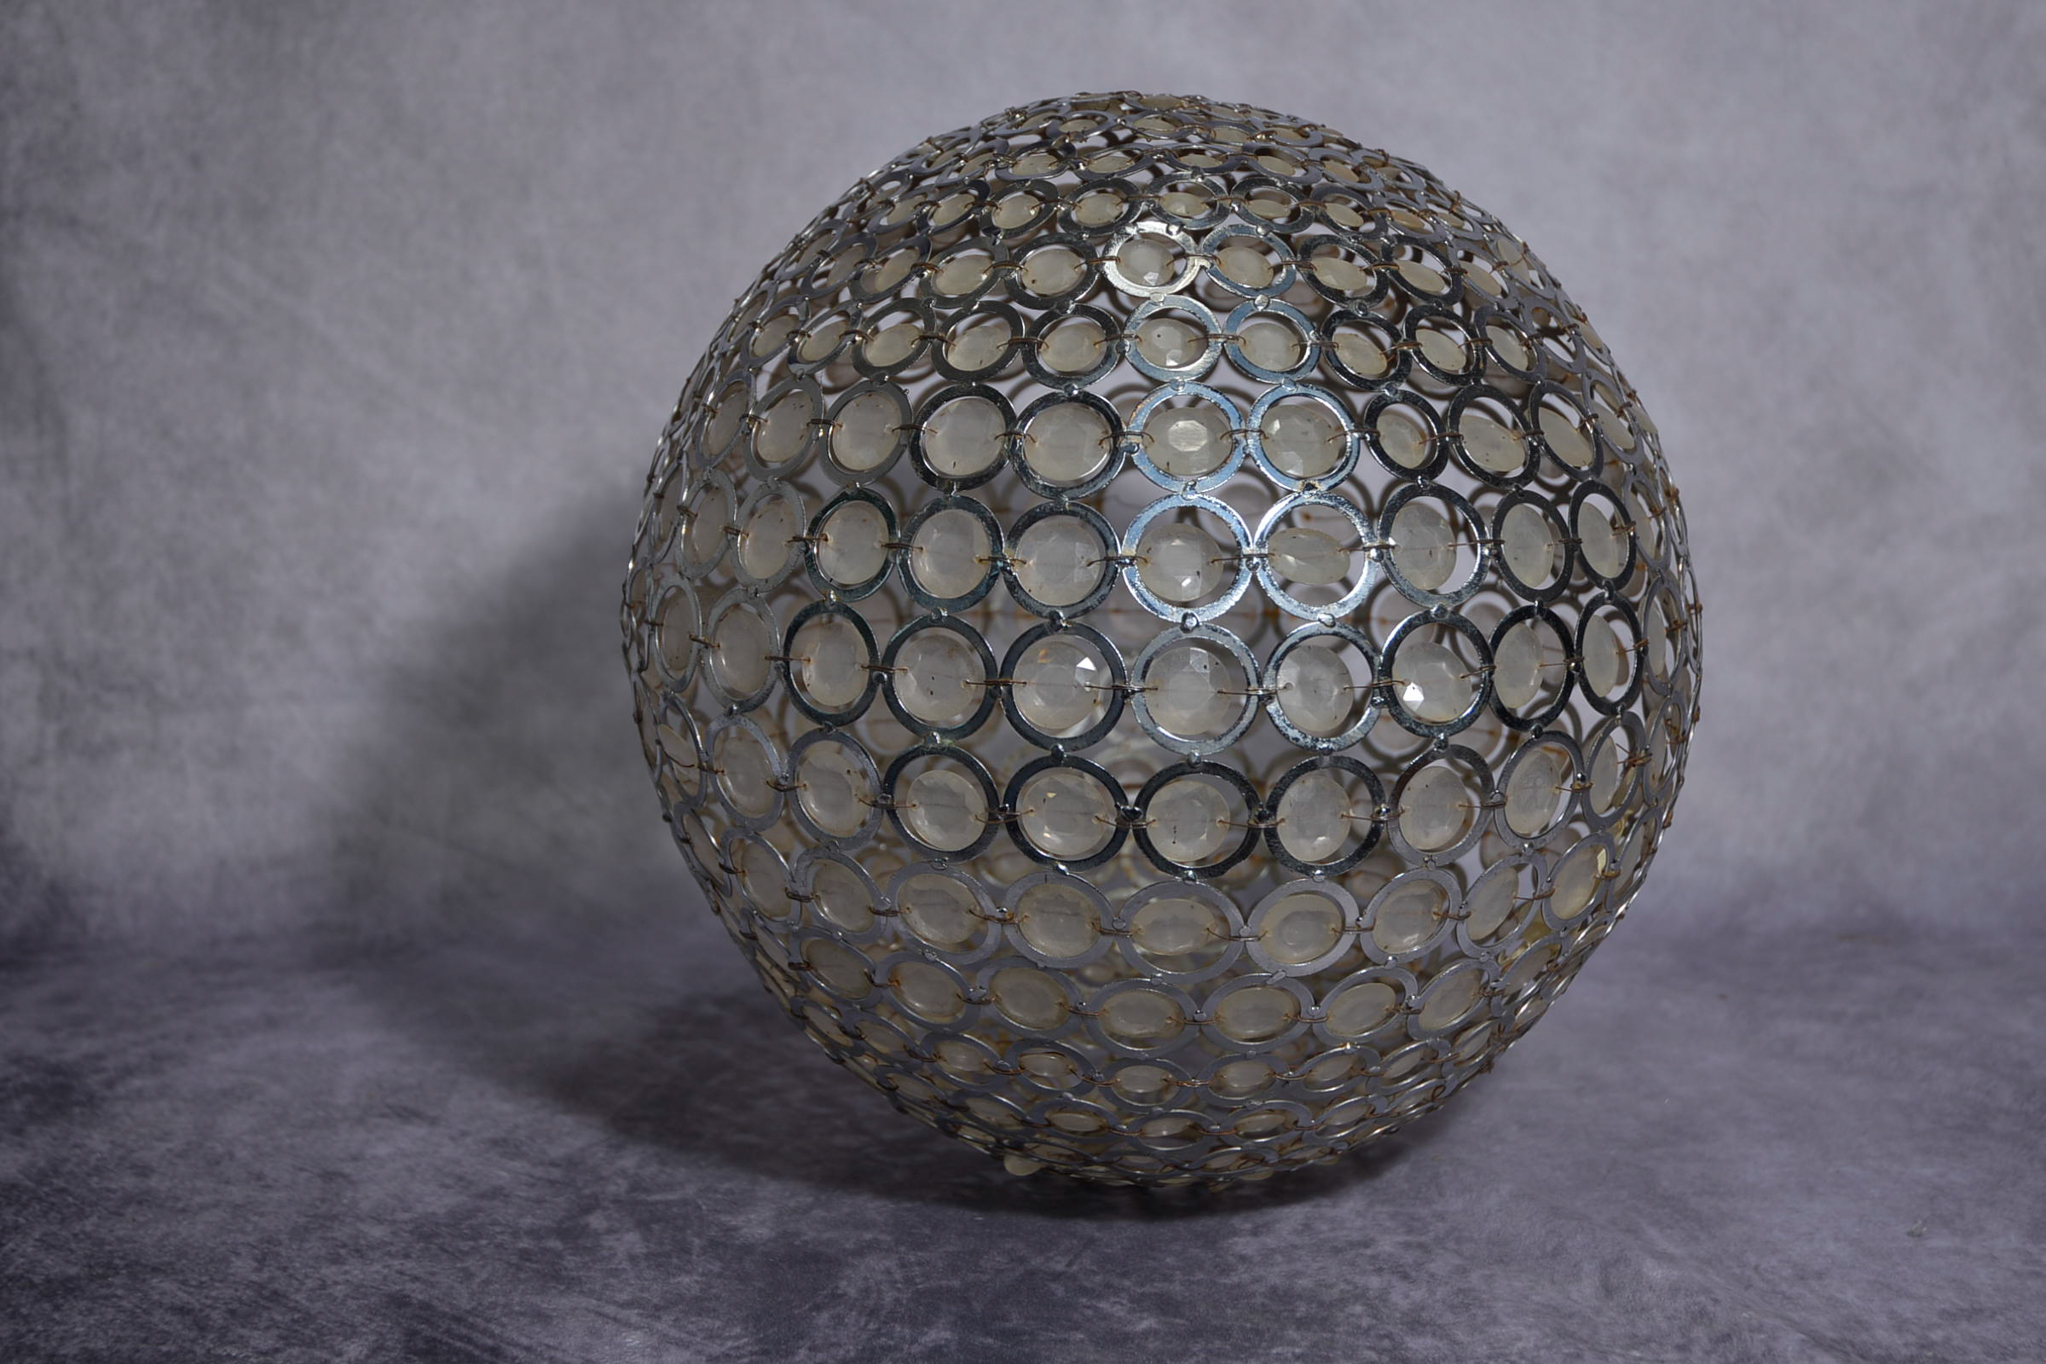 Lot 57 - Rare 1970's spherical light shade